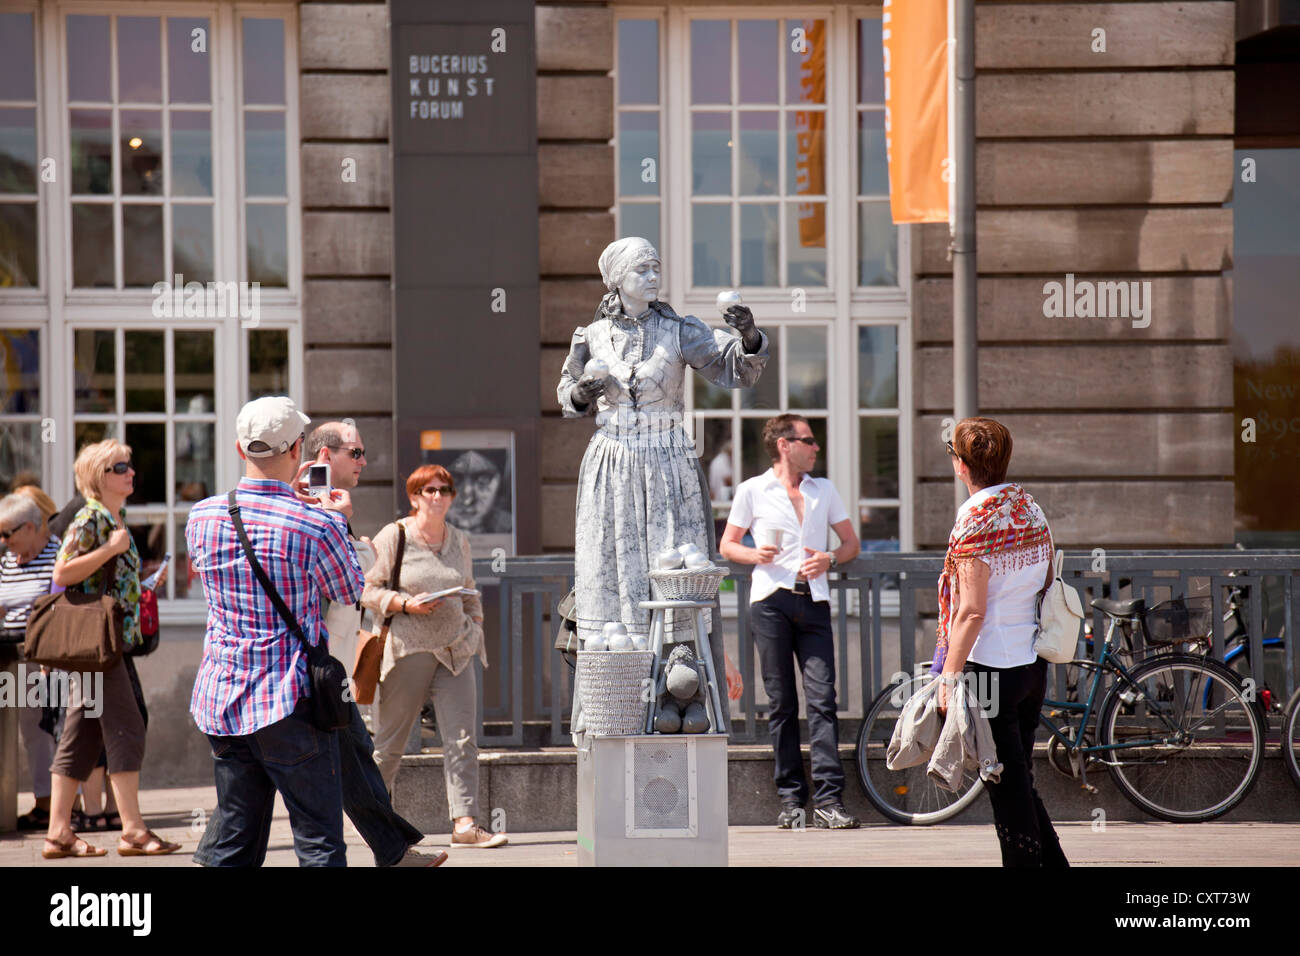 Street entertainer painted with silver colour in the city center, Free and Hanseatic City of Hamburg, Germany, Europe - Stock Image